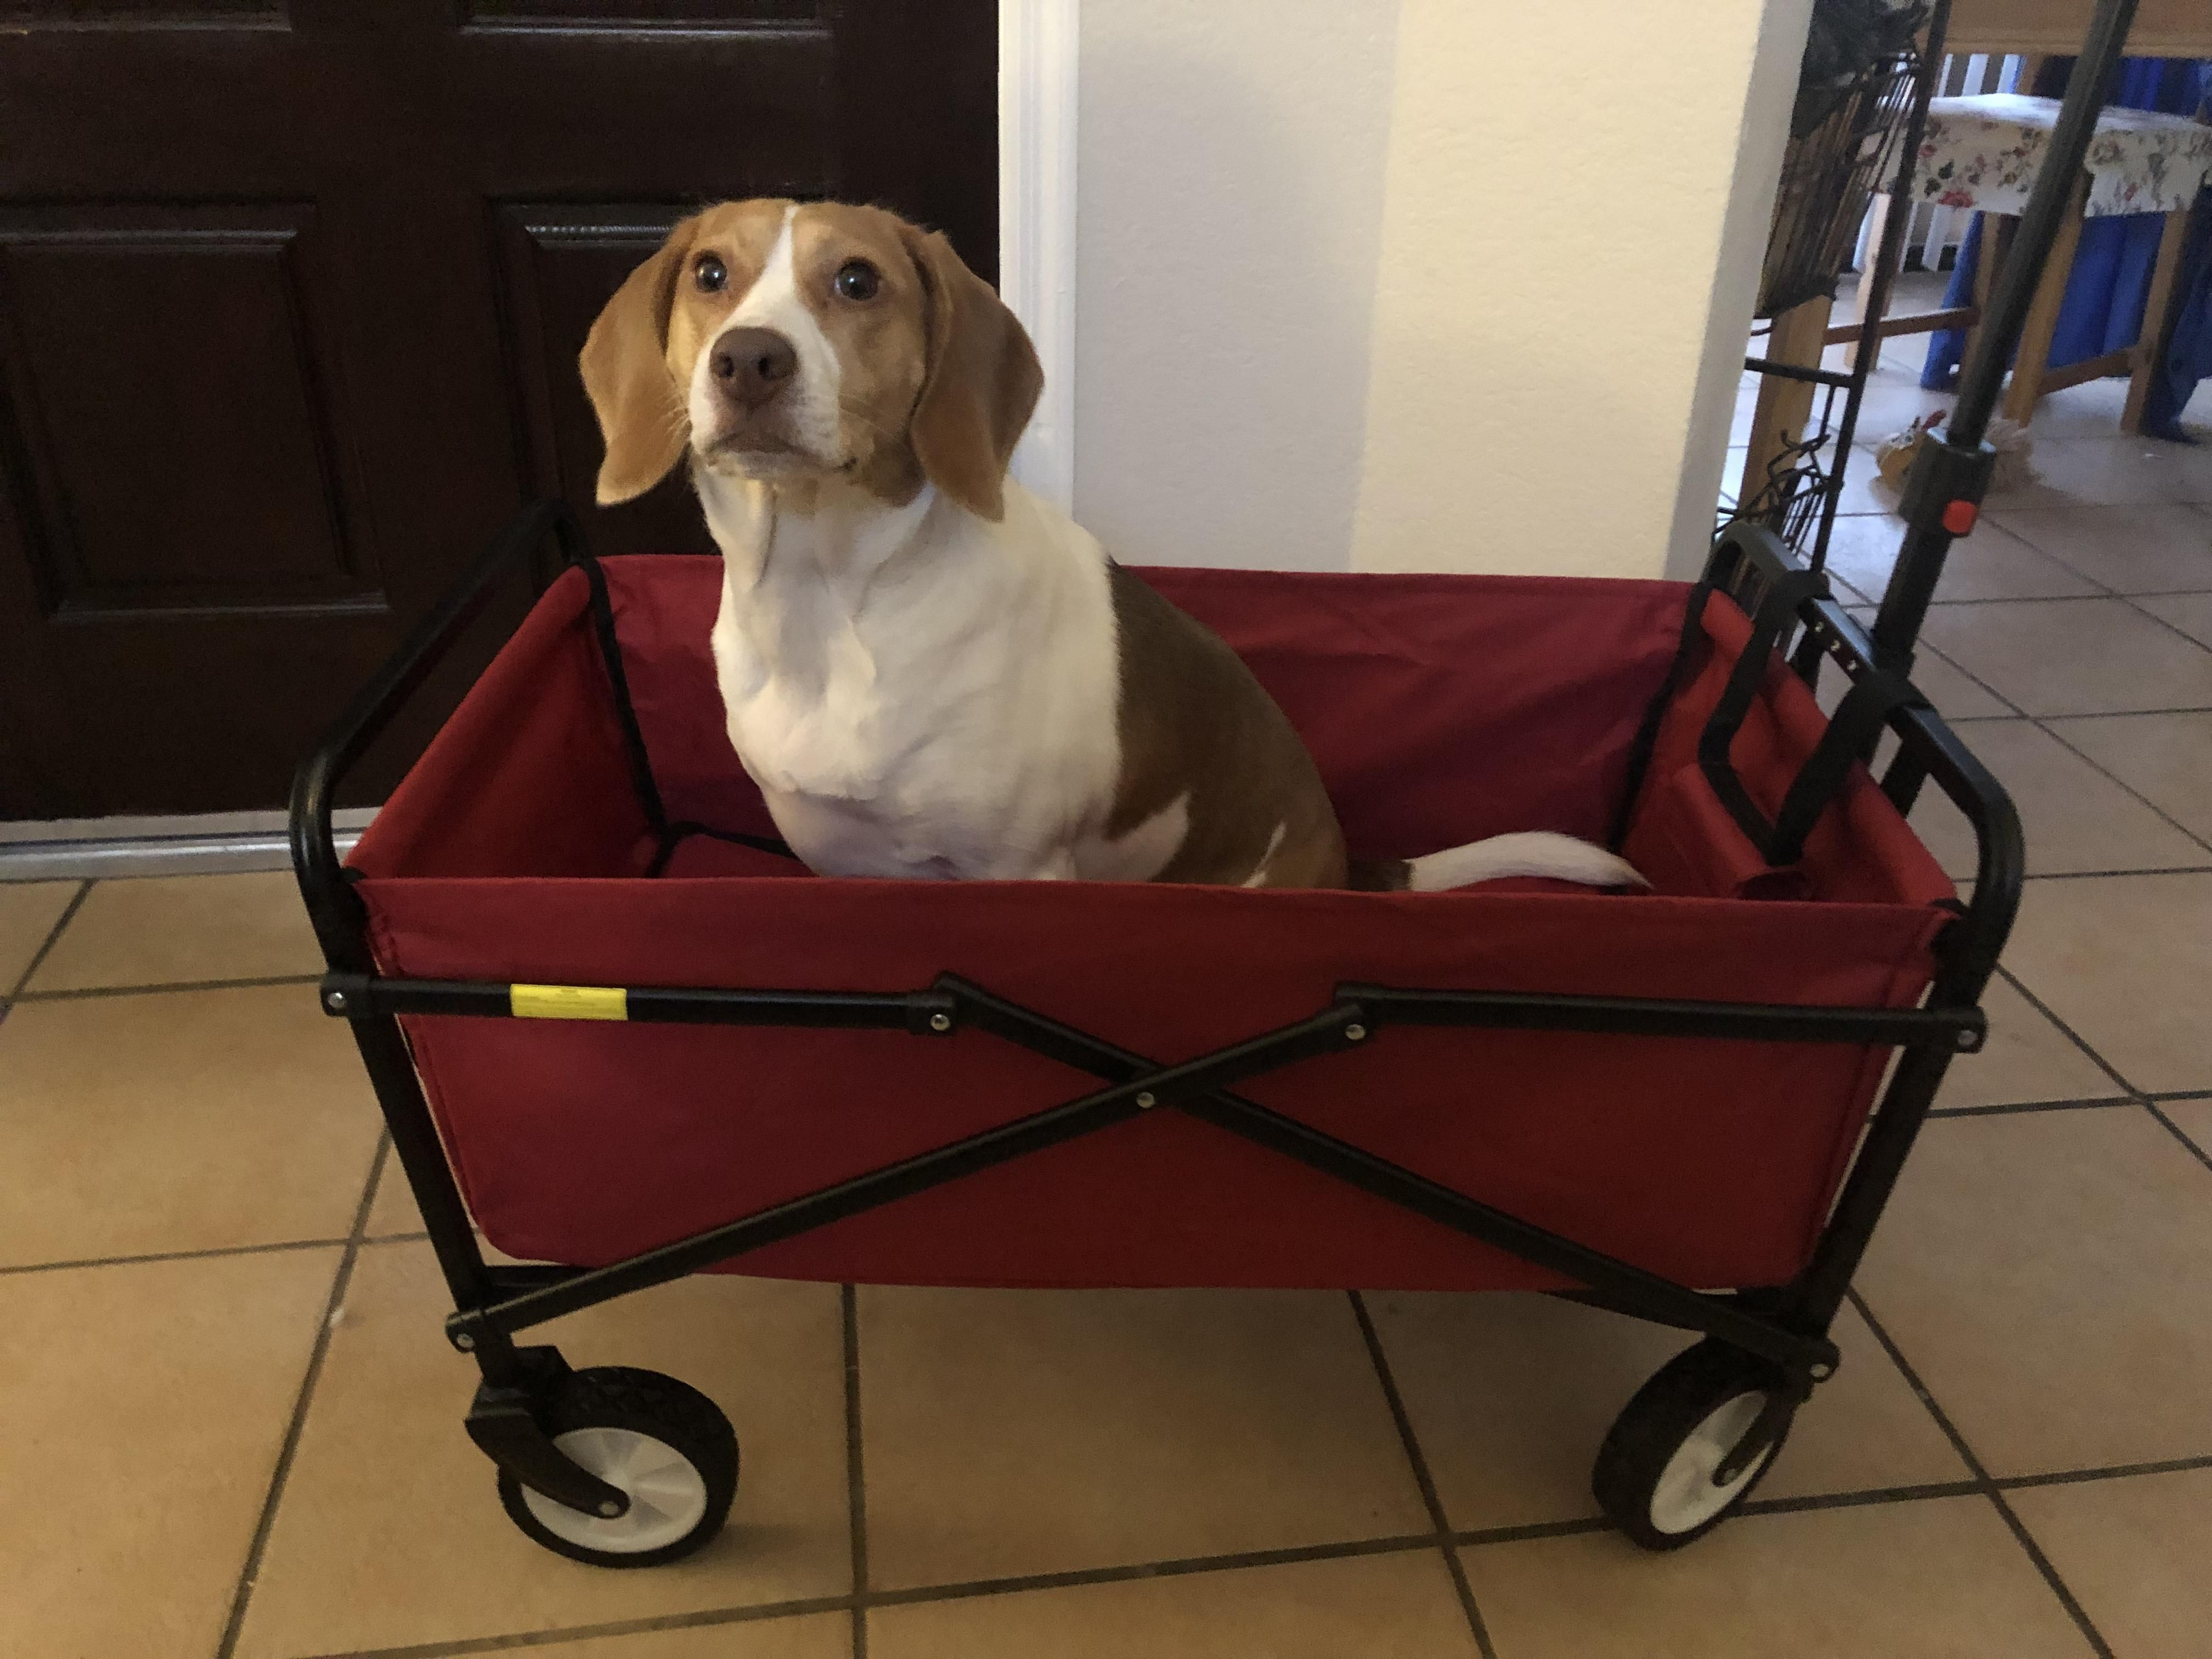 Pin by Rickey Smith on beagles Beagle, Dogs, Baby strollers